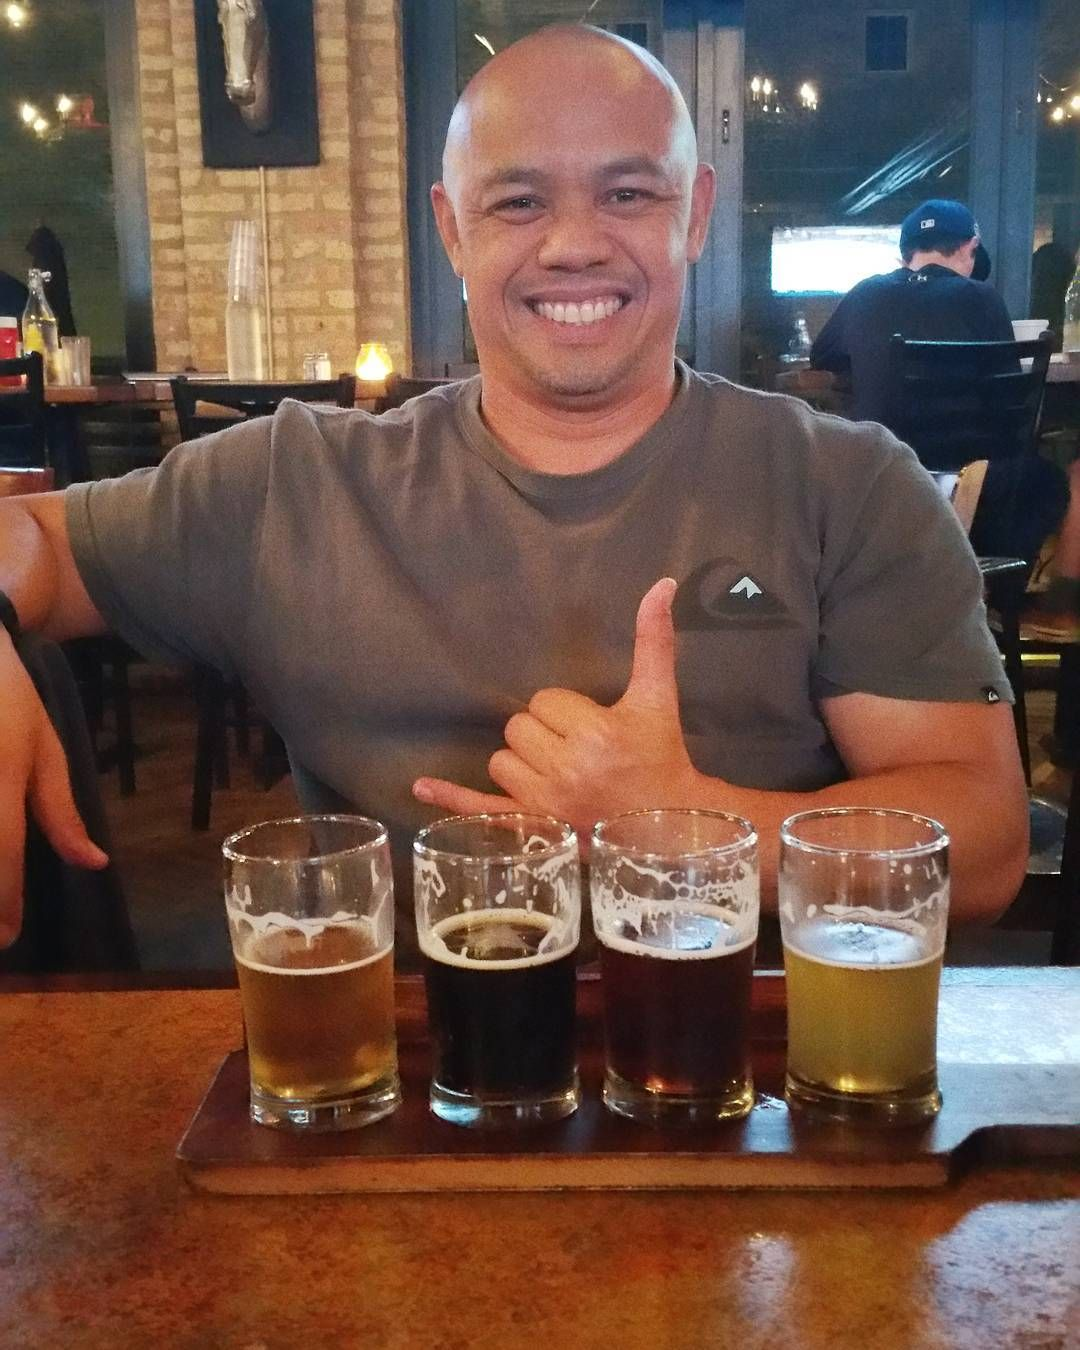 estal8r... Sampling some local Chitown craft beers! Iron Horse Ale House